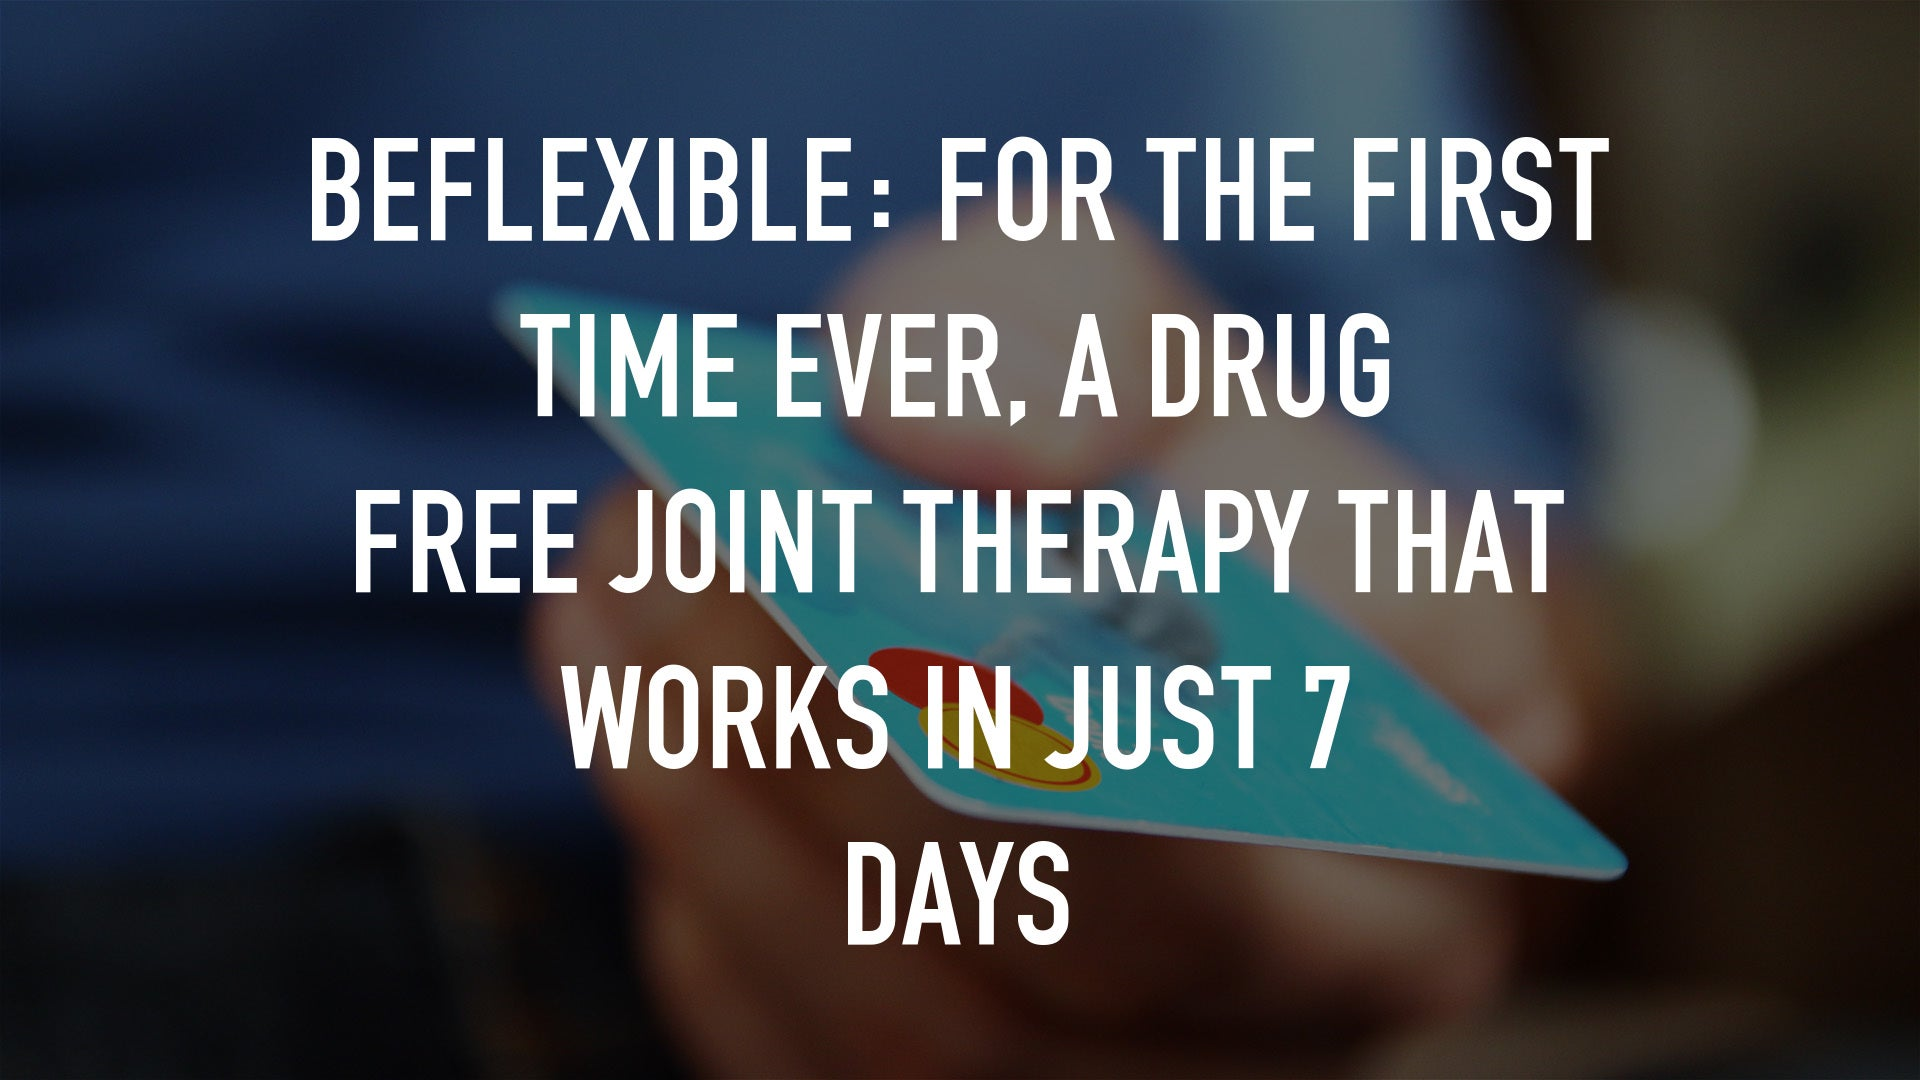 BeFlexible: For the first time ever, a drug free Joint Therapy that works in just 7 Days